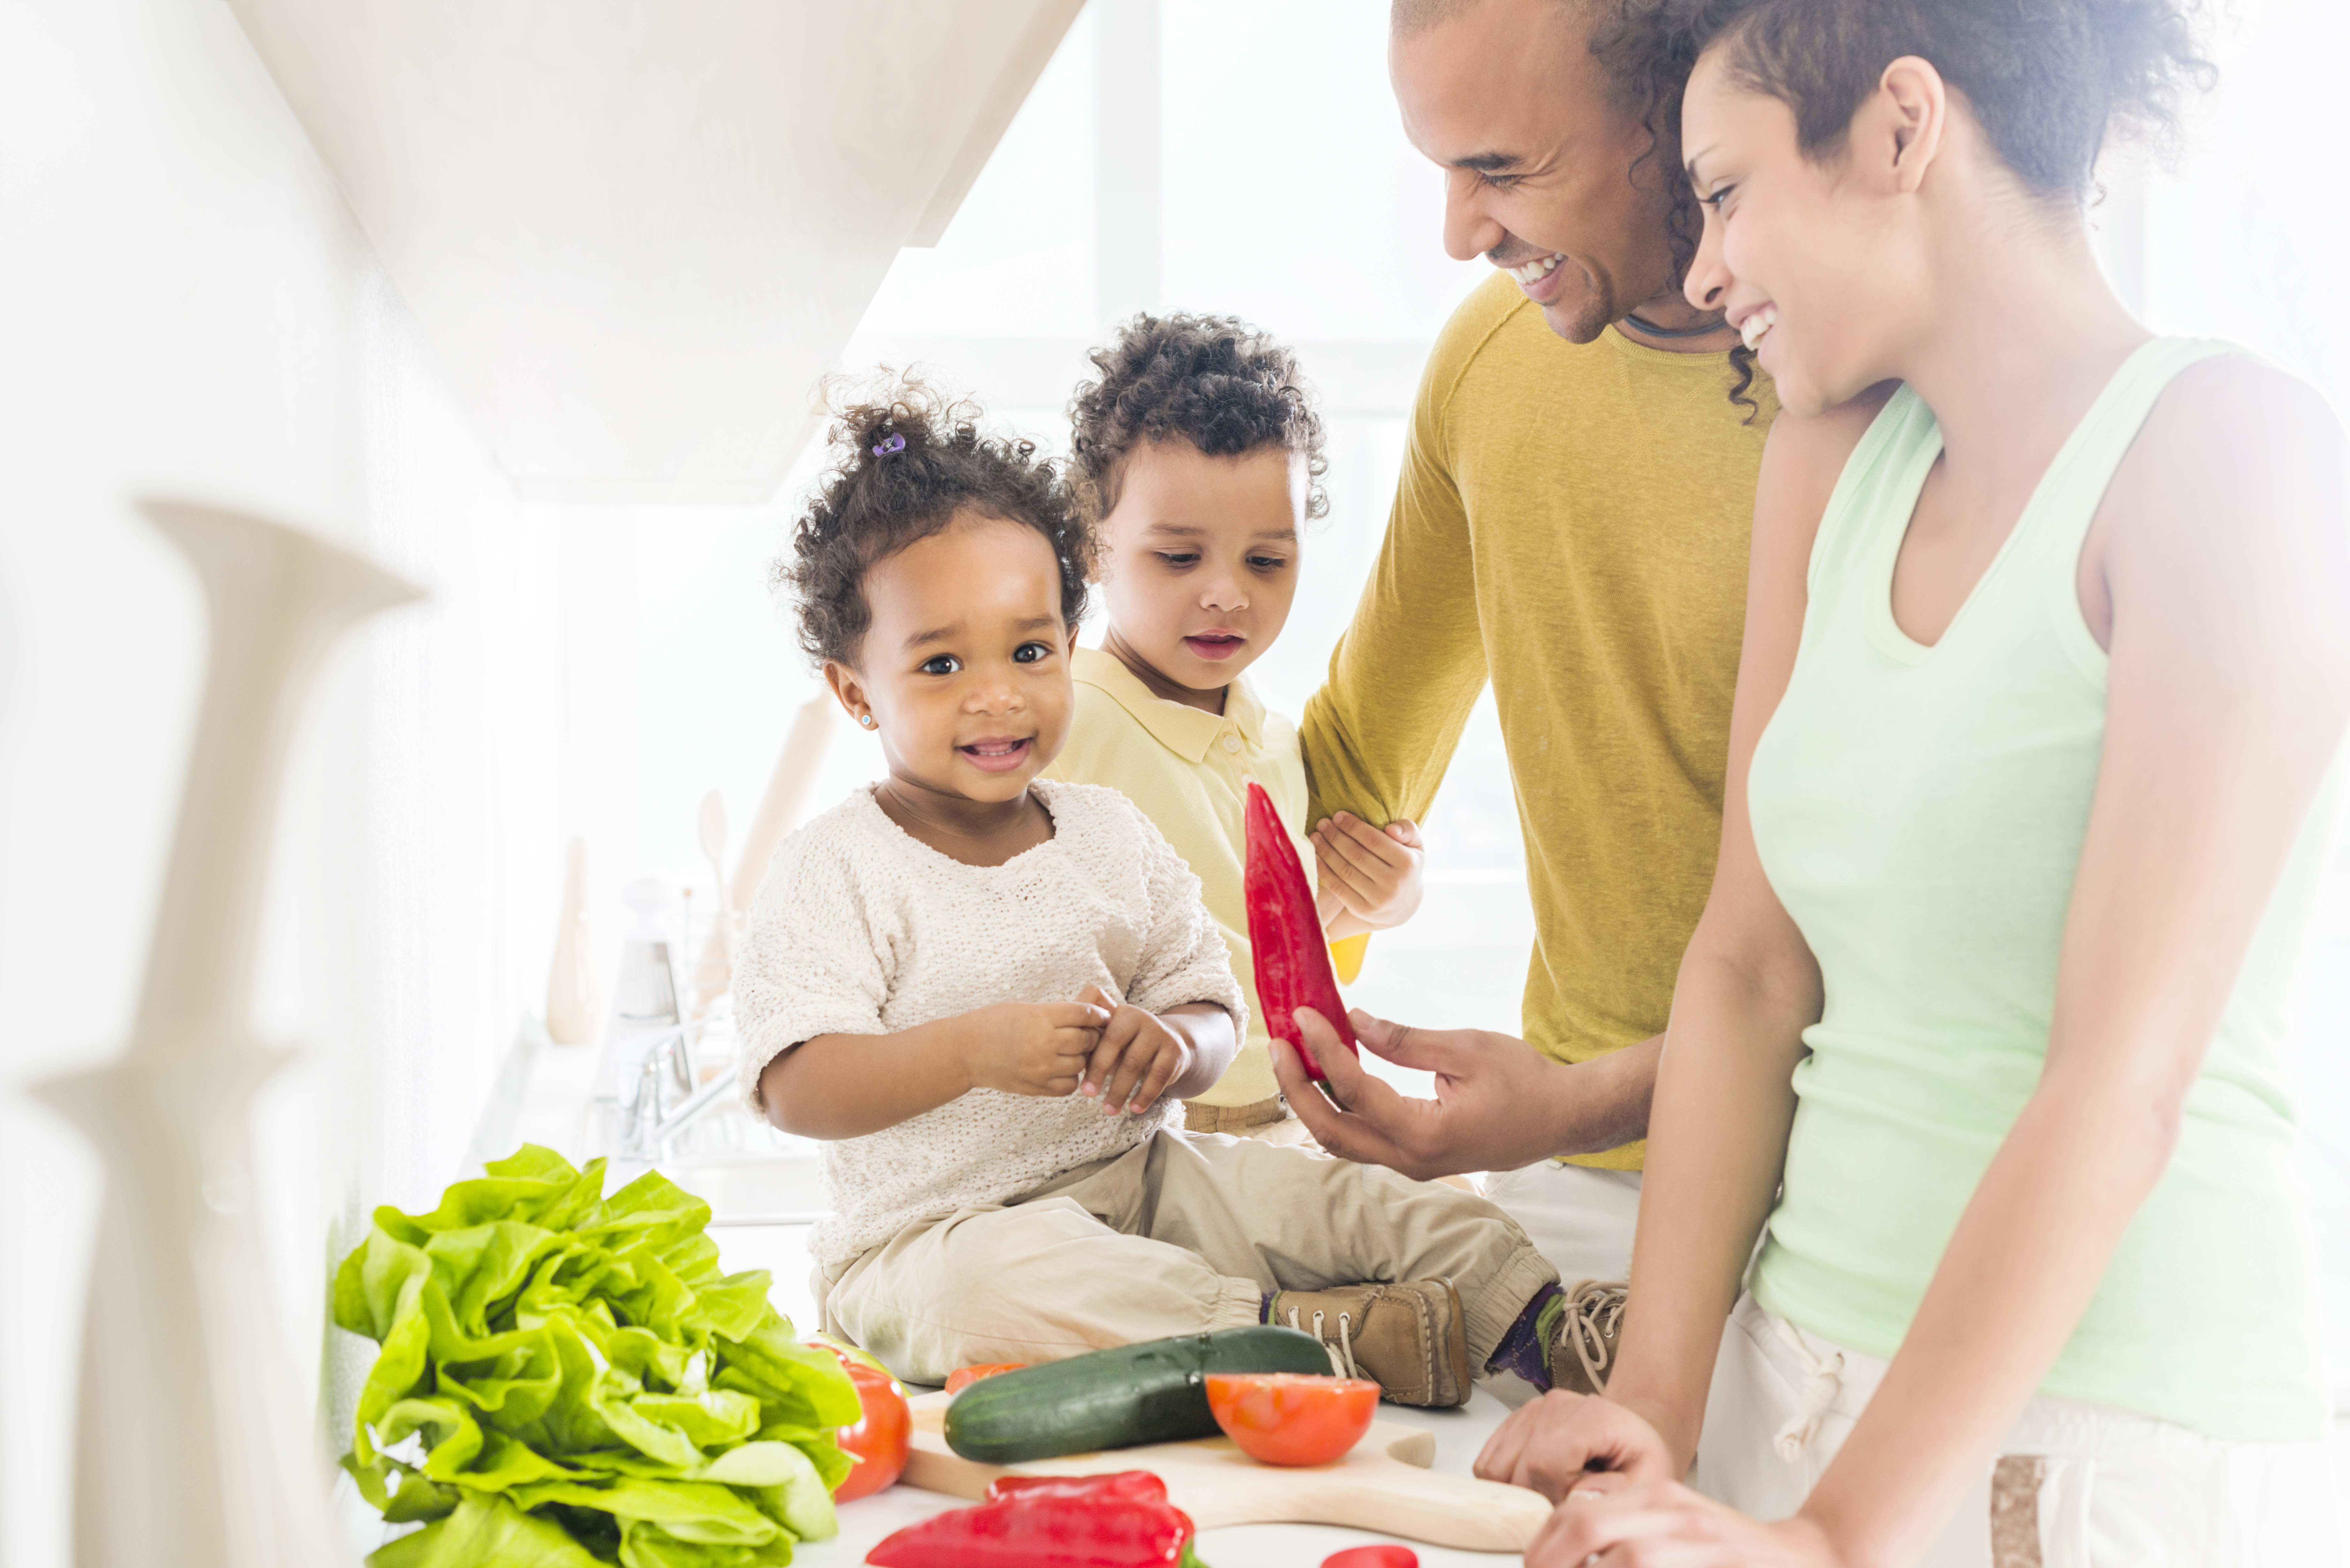 African American family in the kitchen.